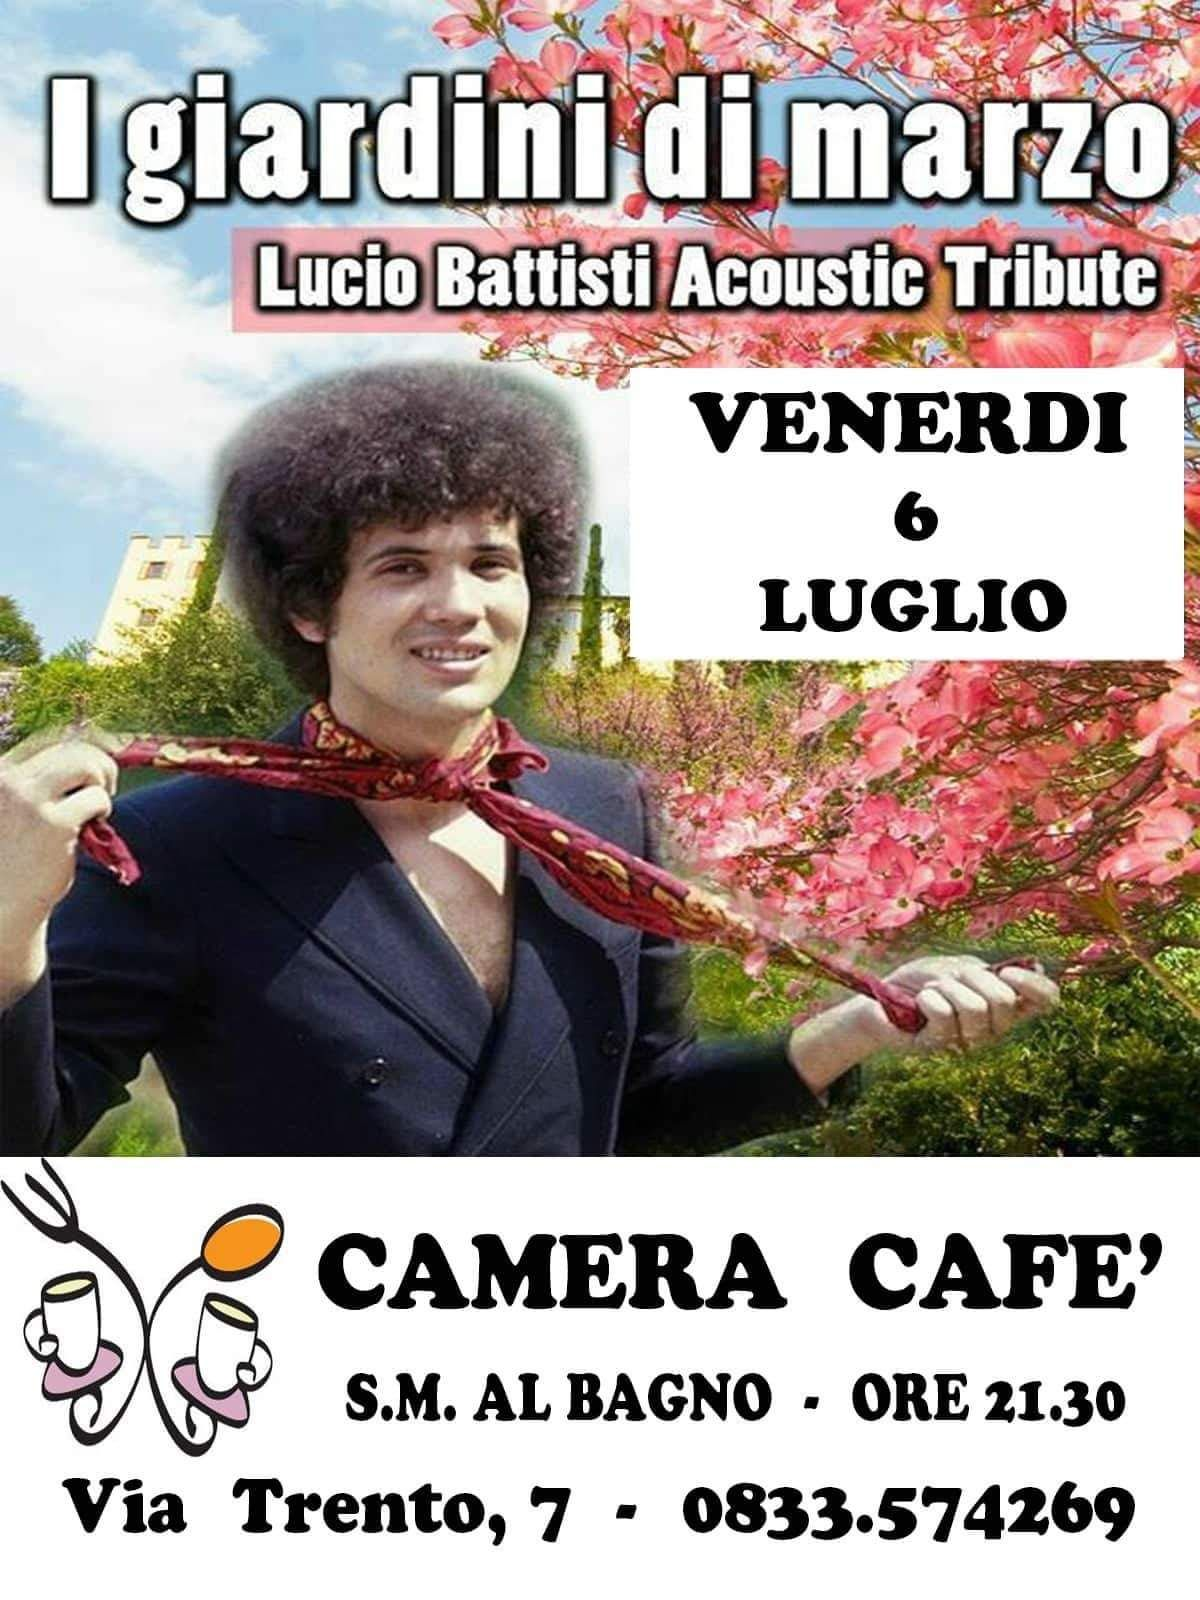 Lucio Battisti Acoustic Tribute 6 luglio 2018